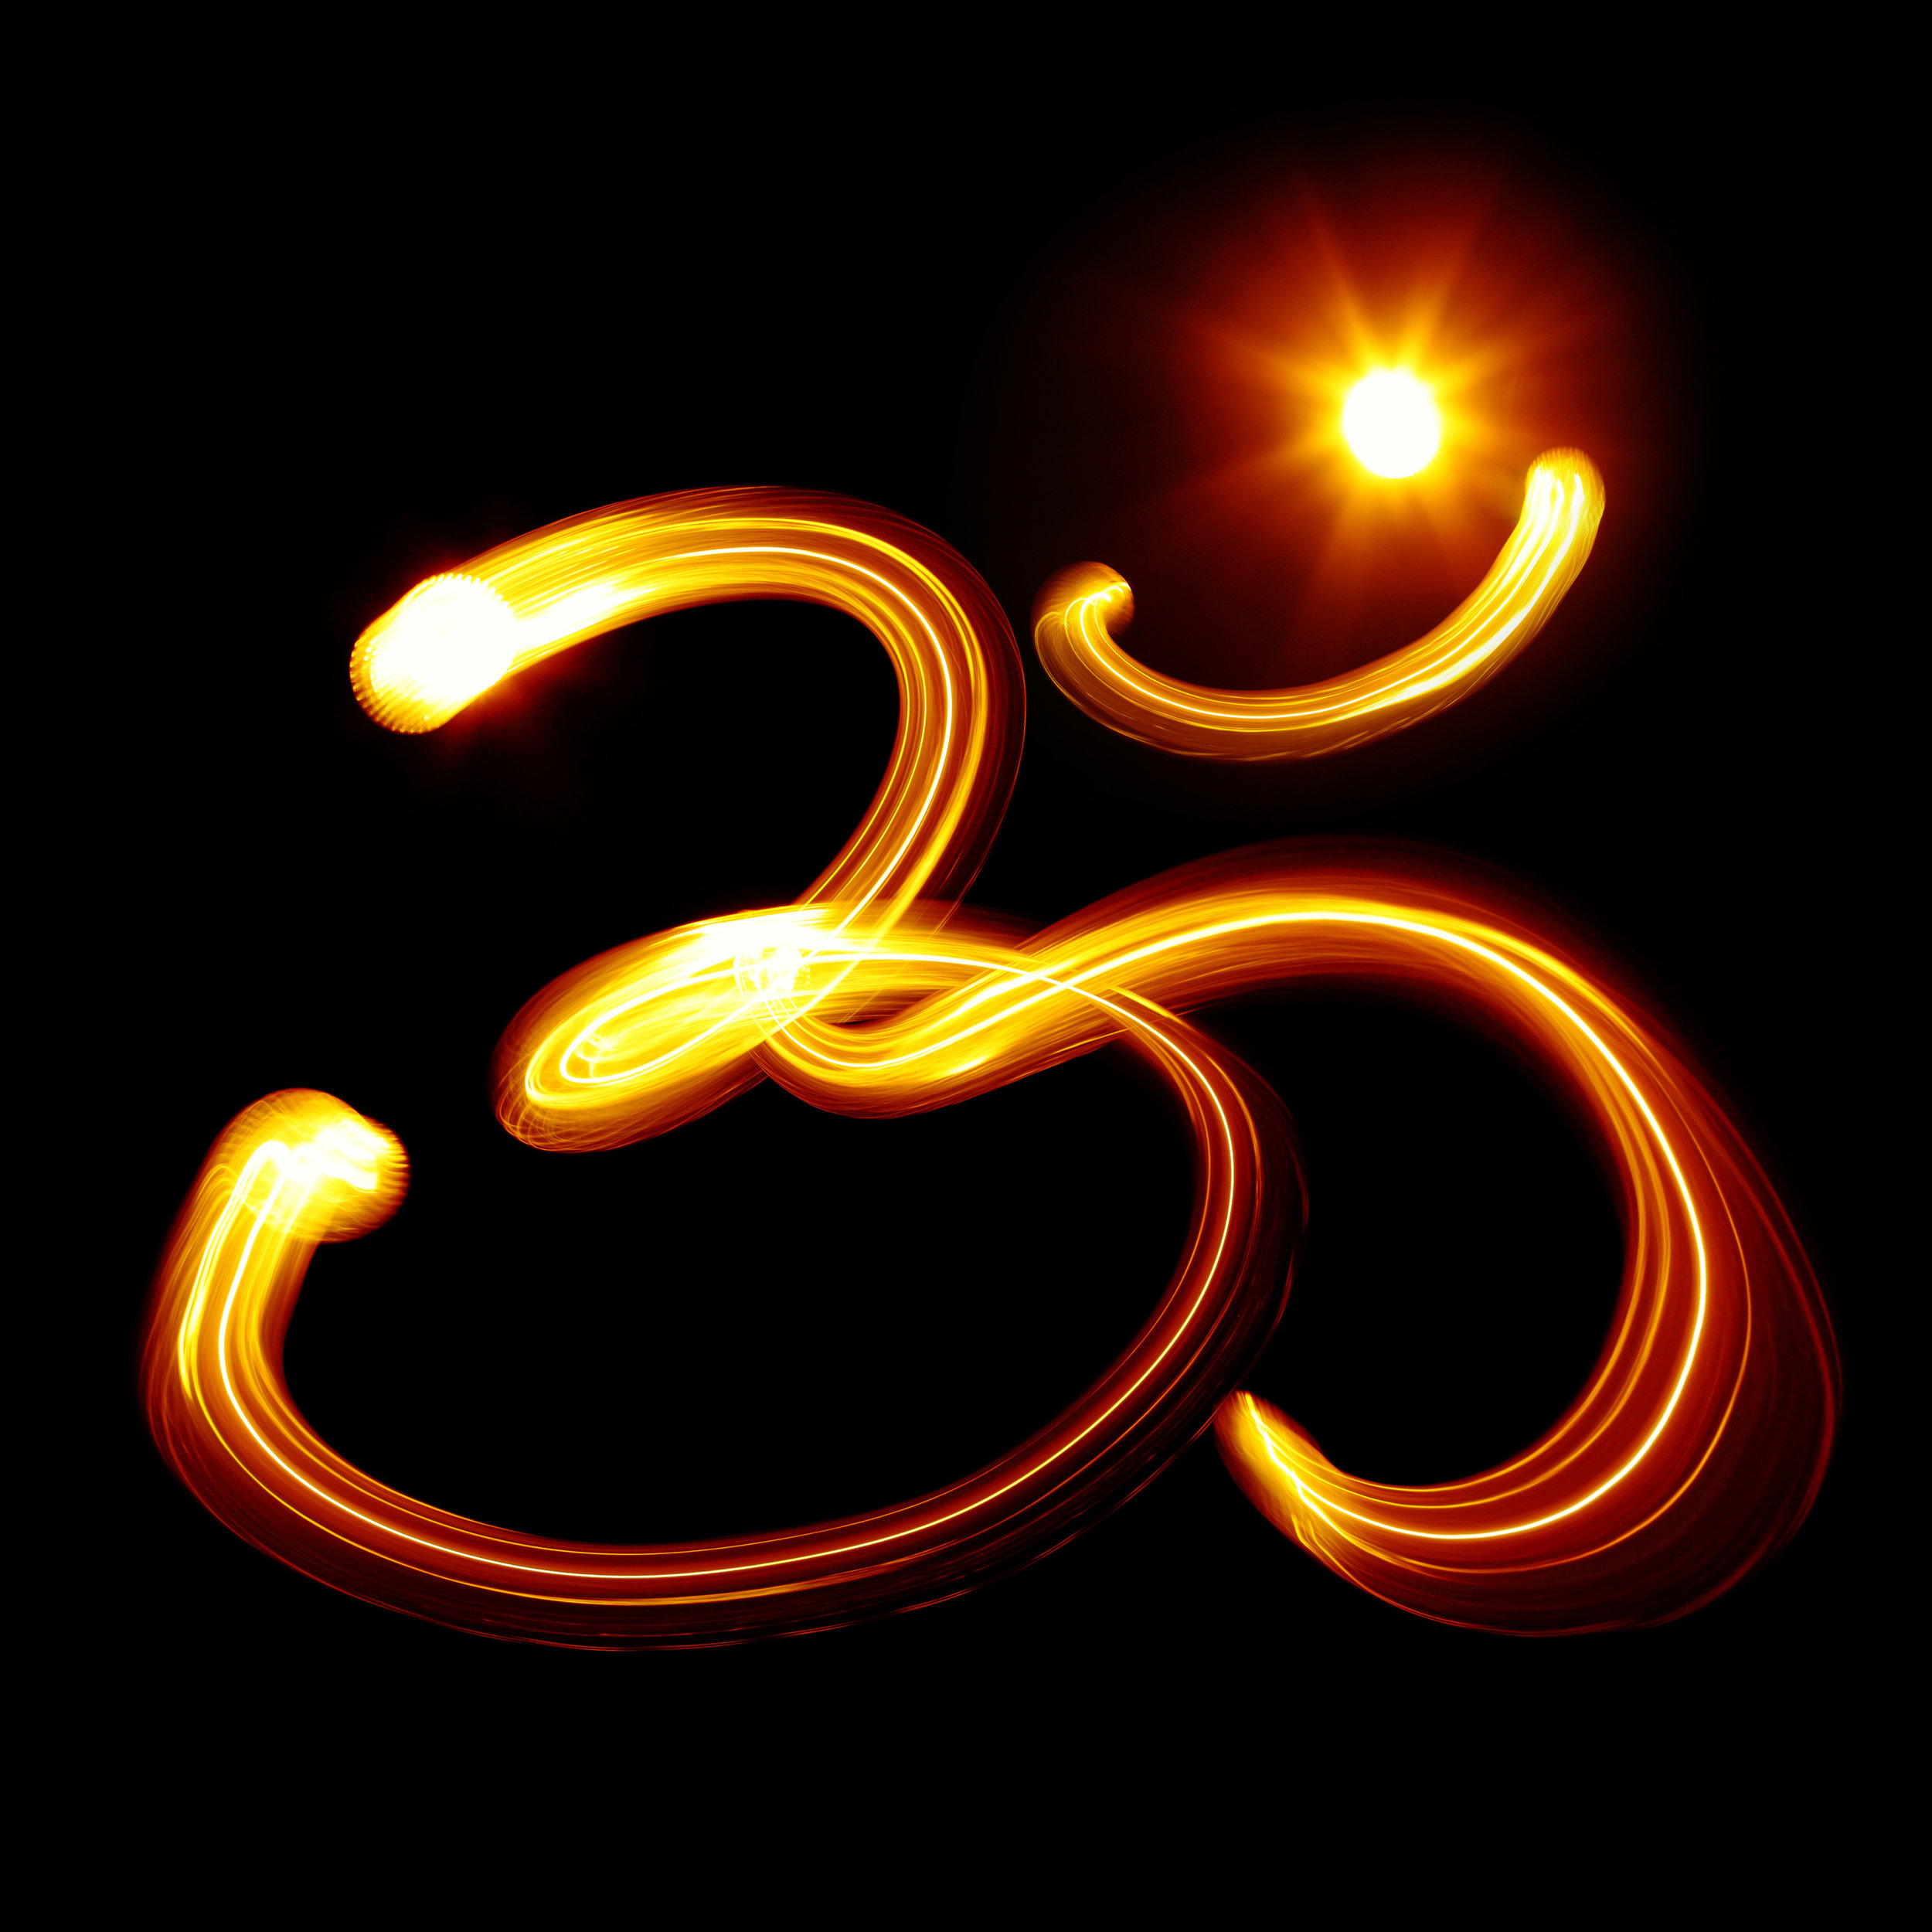 AUM or  Om  ( Sanskrit : ॐ) is a sacred sound or vibration from which all the manifest universe emanates.